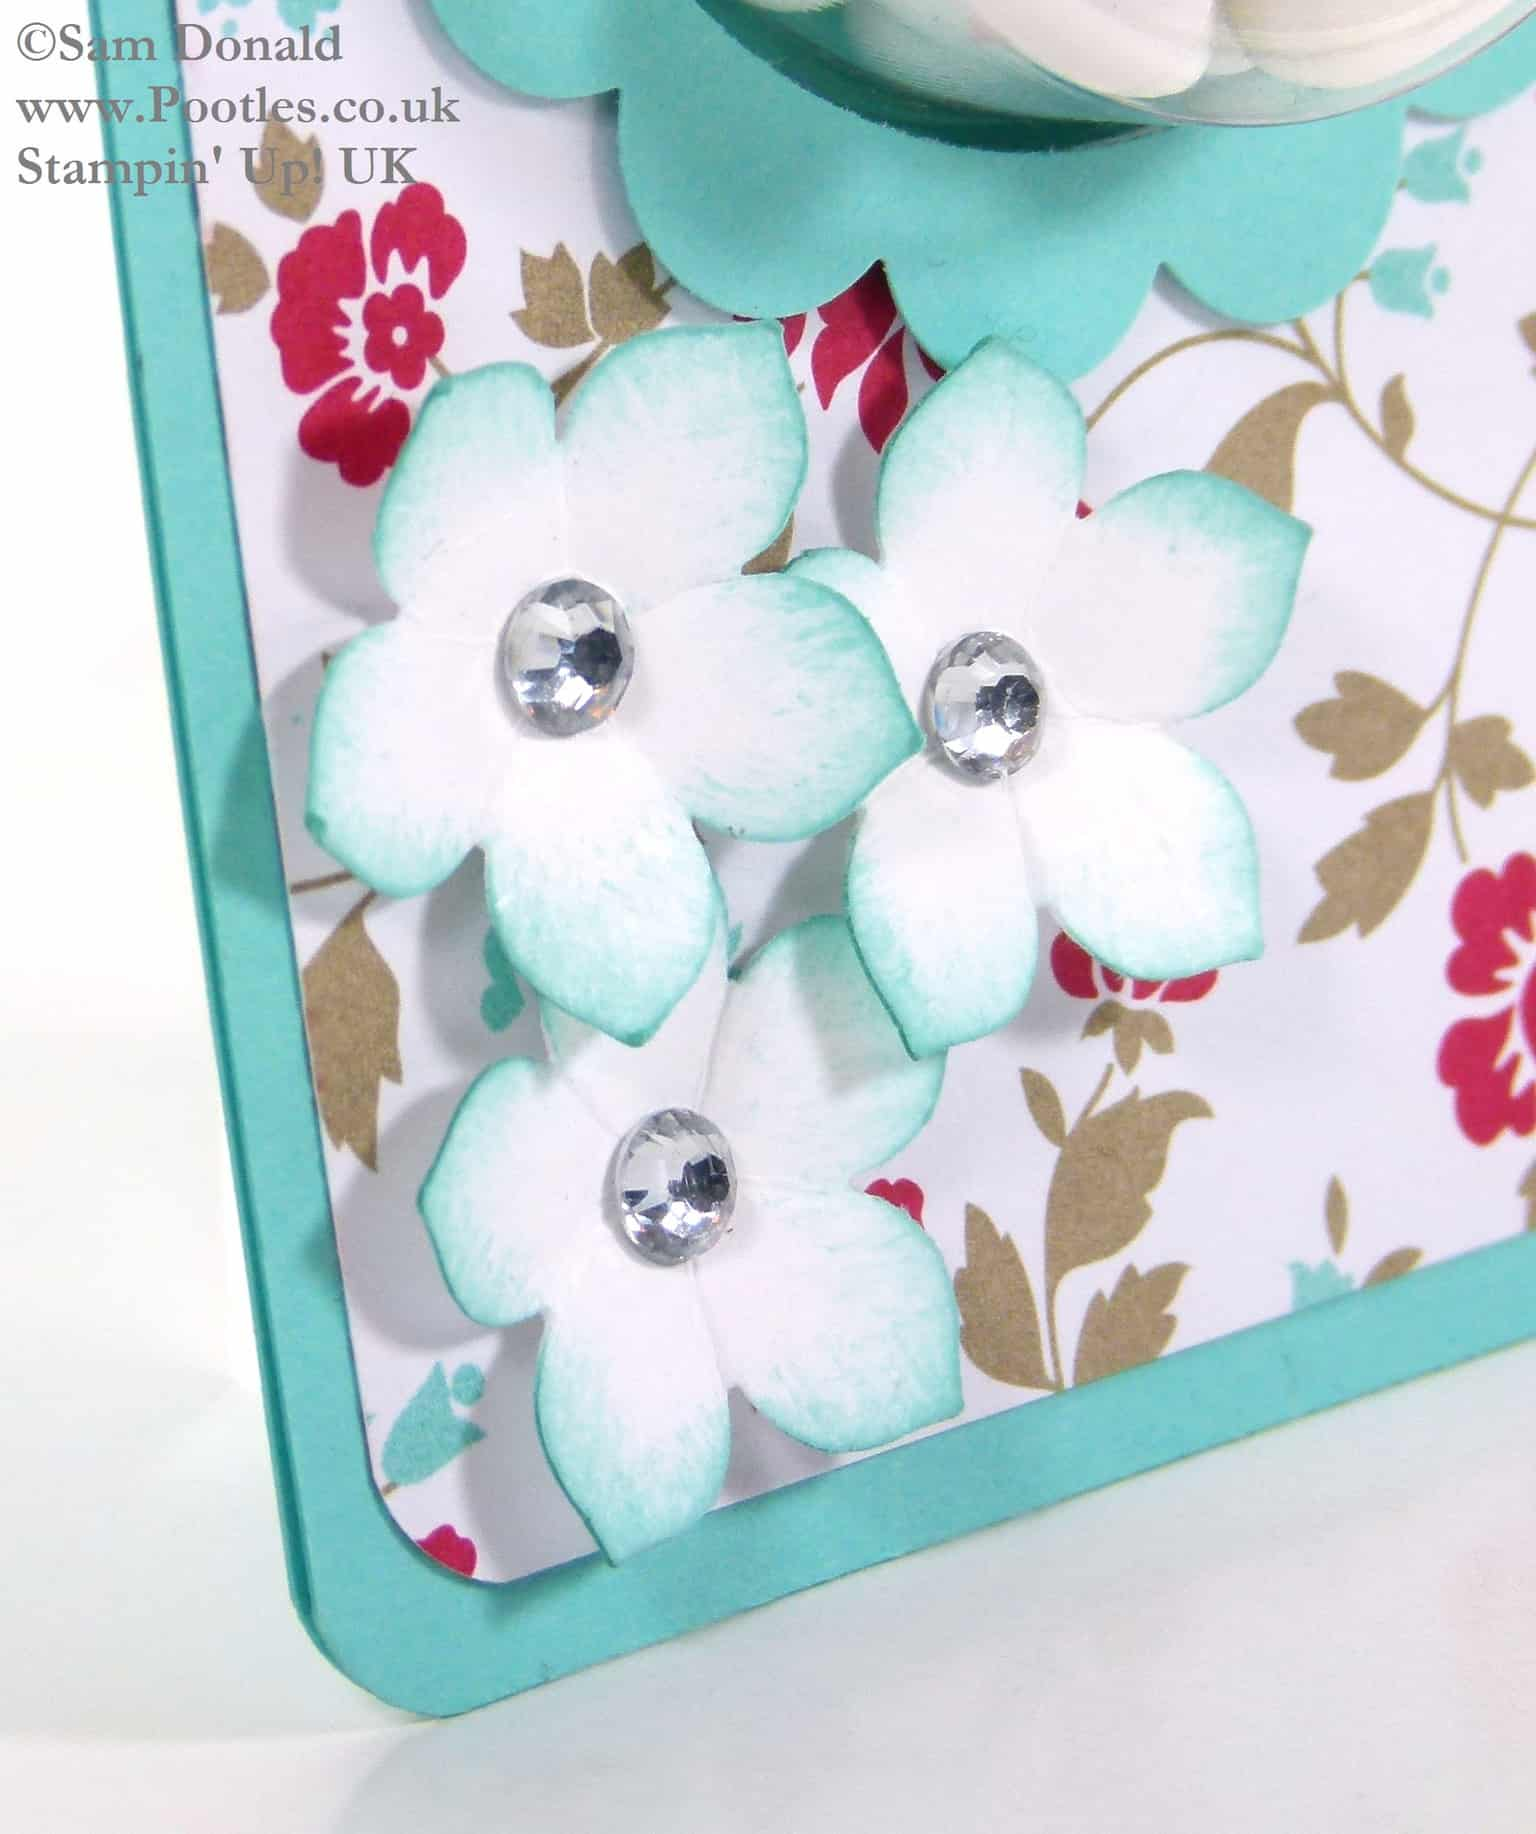 POOTLES Stampin Up UK Tic Tac Sweetie Treat Holder Tutorial